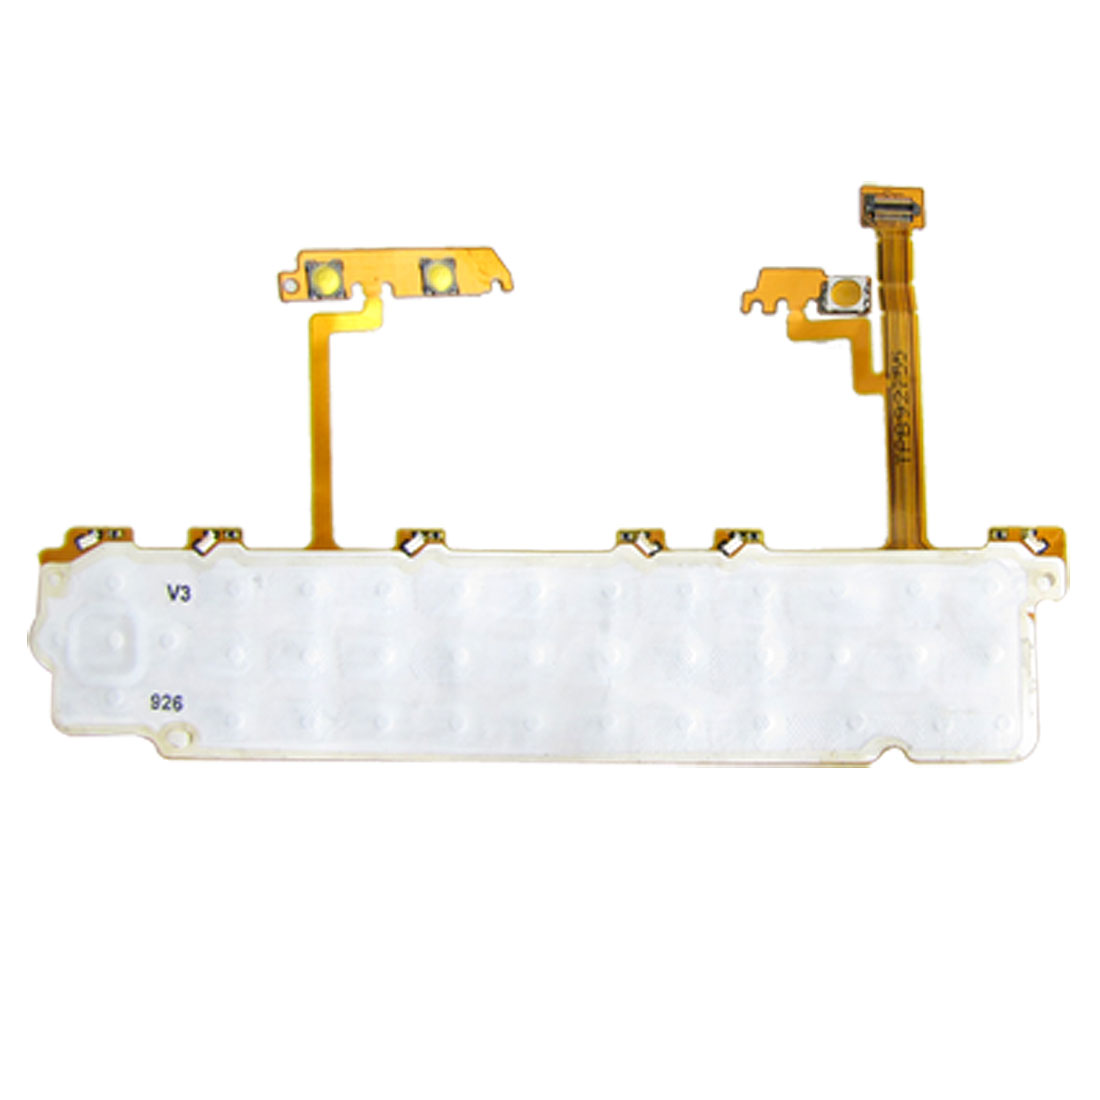 Repair Part Keypad Board Flex Cable for Nokia N97